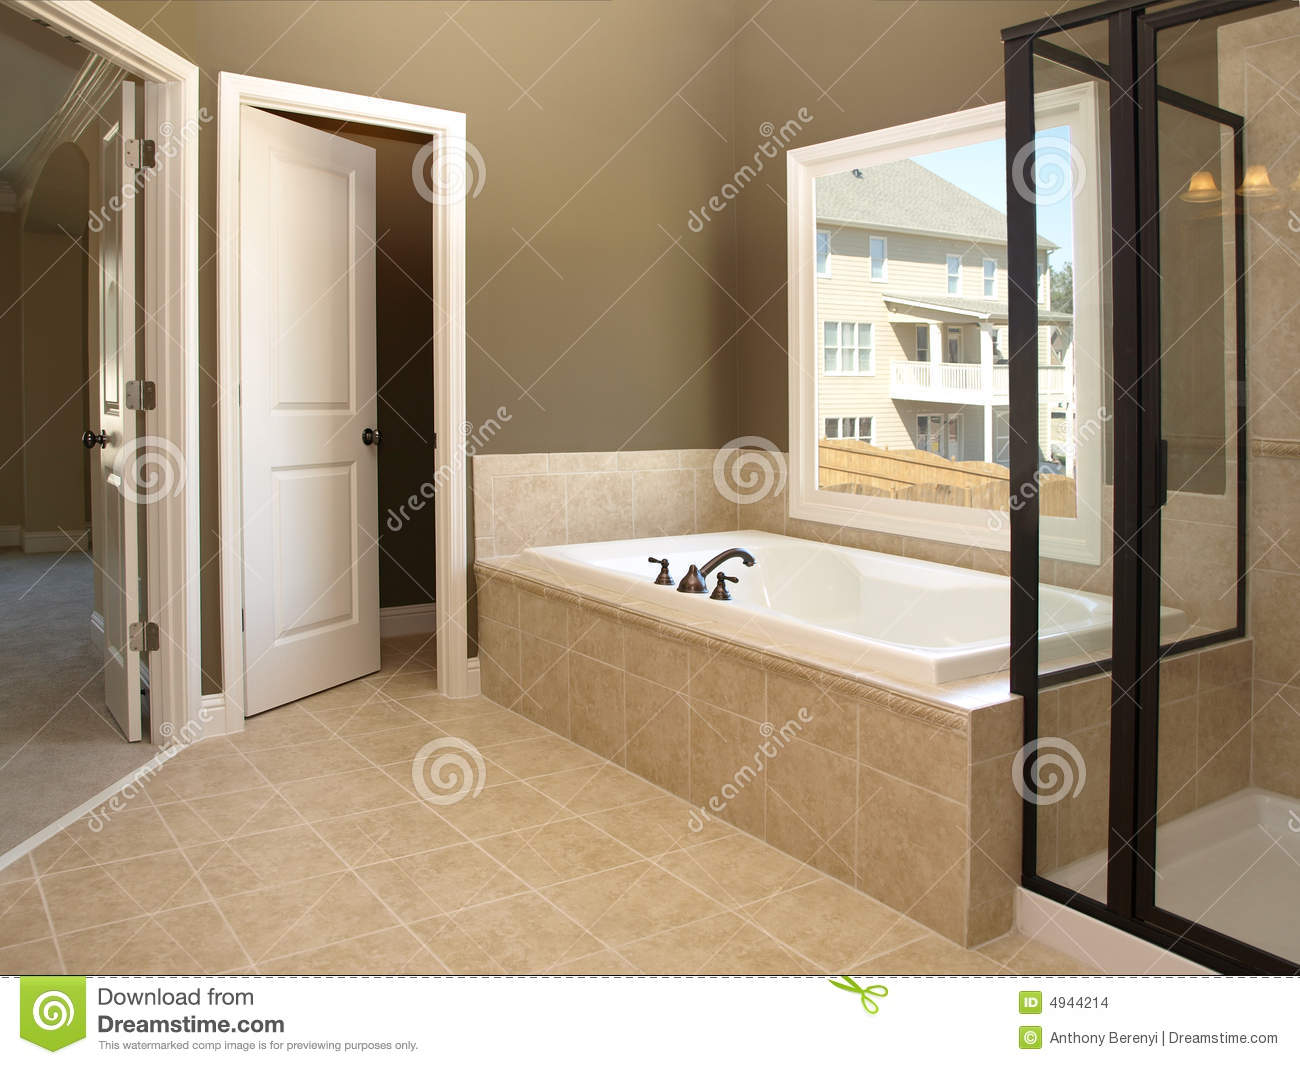 Baño De Tina Con Vinagre:Tub and Bathroom Window